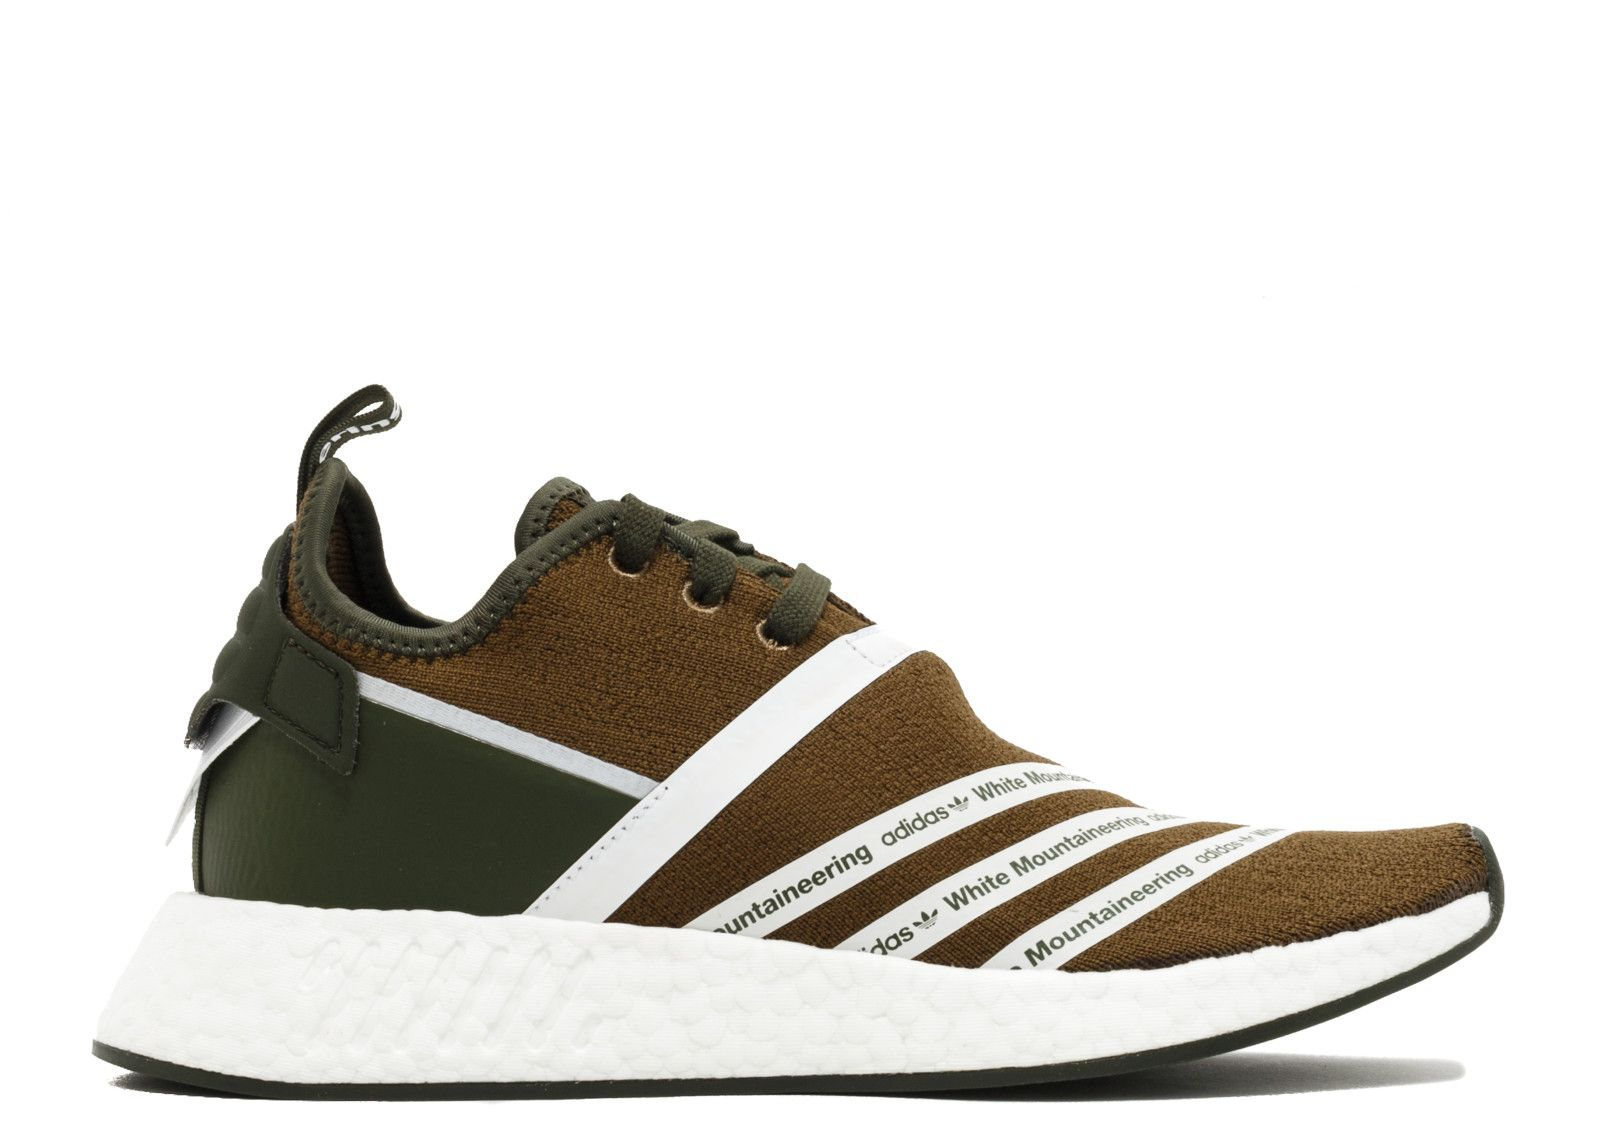 ffa66b9490a55 2017-2018 New Arrival WM NMD R2 PK WHITE MOUNTAINEERING trace olive white  white cg3649